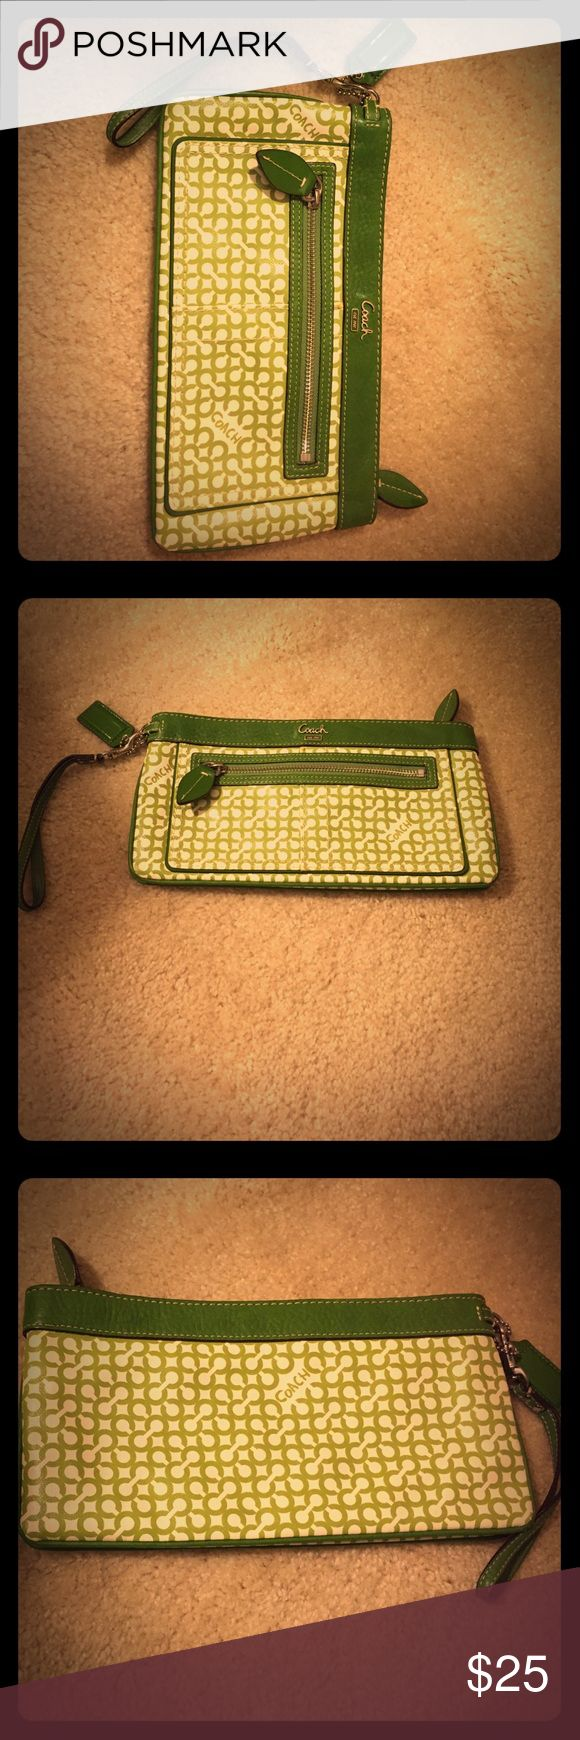 Coach clutch Adorable green and white Coach clutch (material is vinyl-like) with leaf zipper pulls. A great accessory for any outfit . Coach Bags Clutches & Wristlets